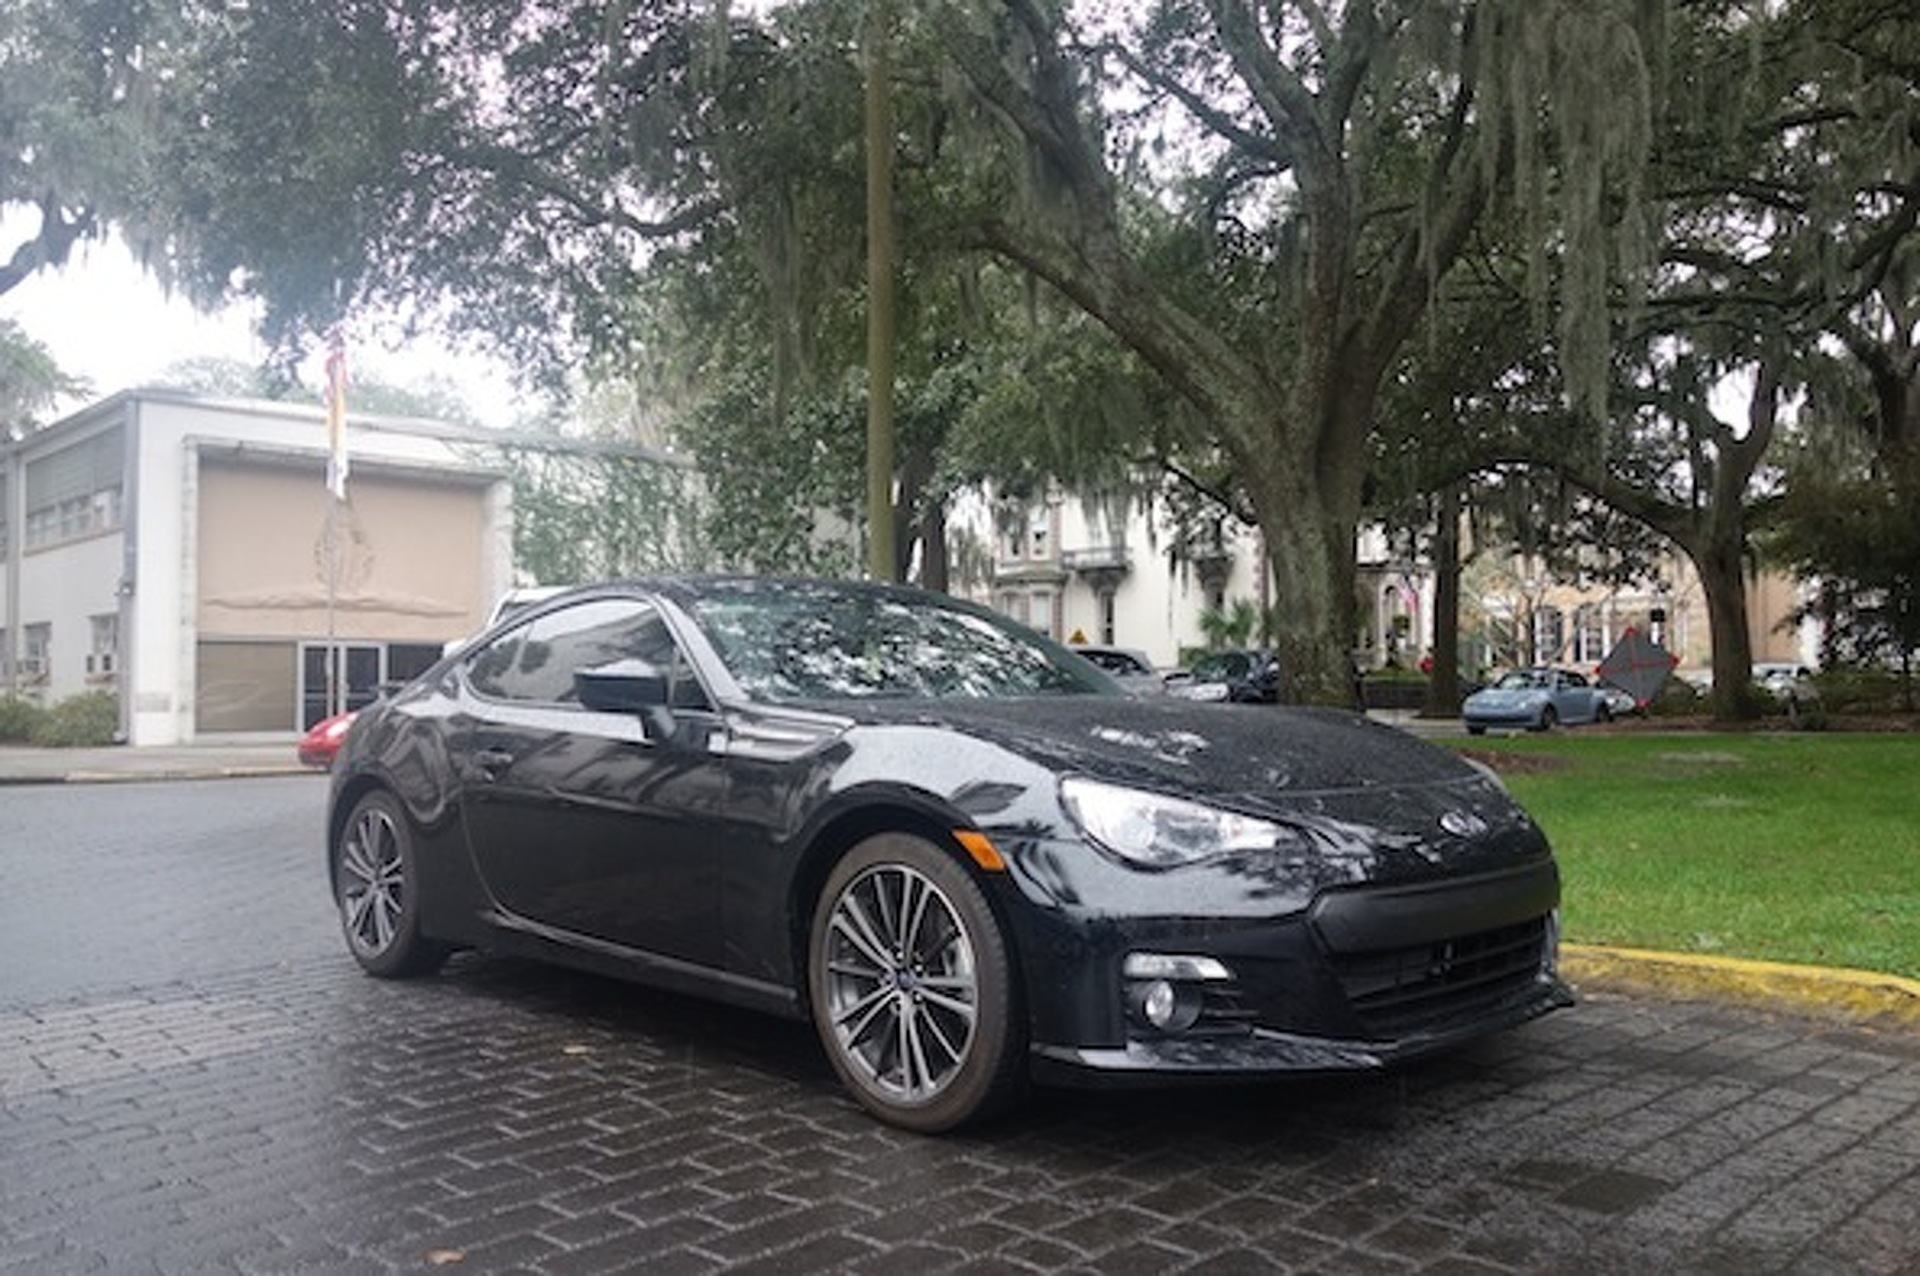 Miami to Savannah In A Subaru BRZ: Bold Drives